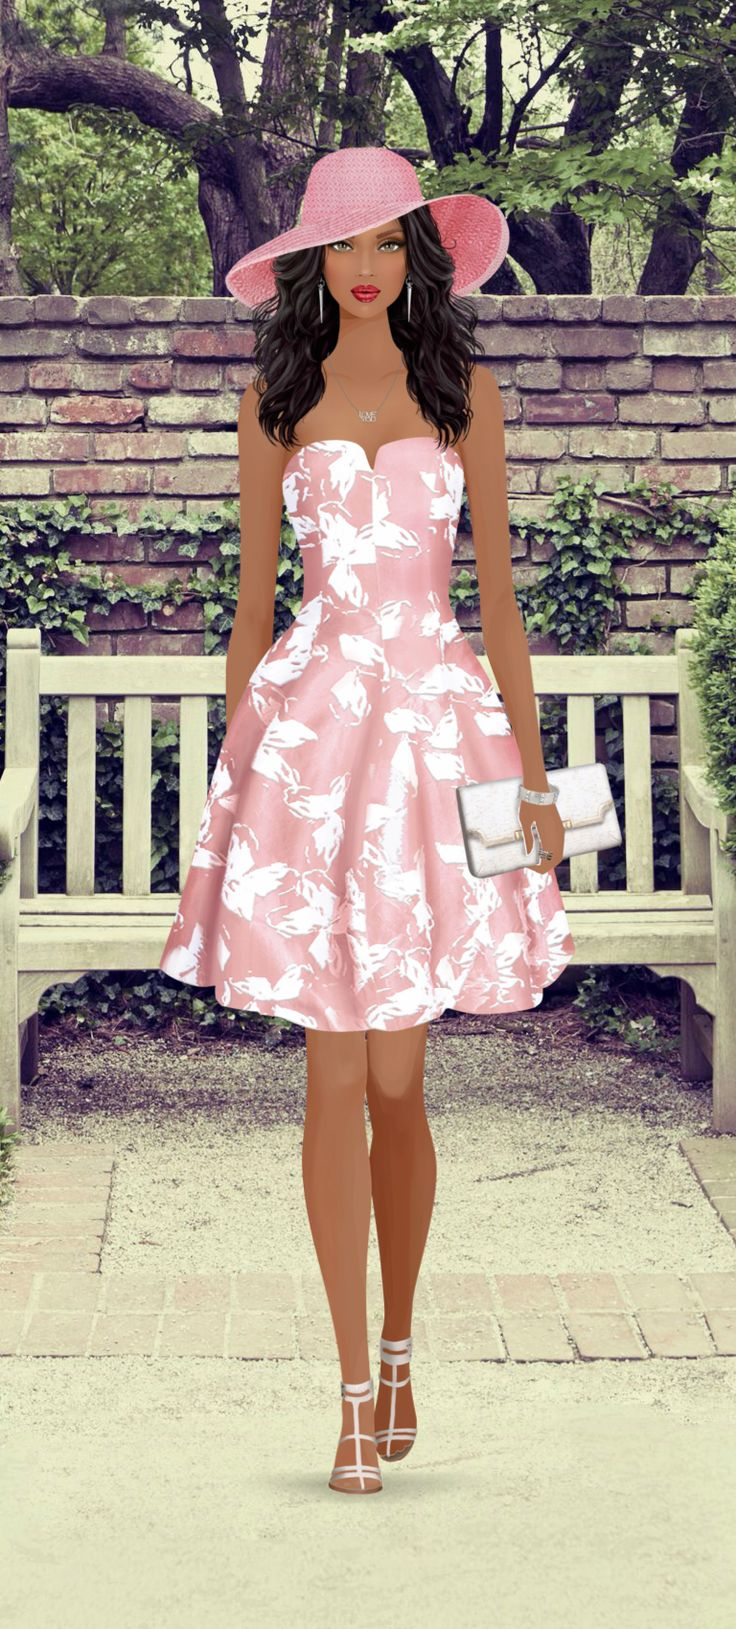 Covet Fashion Game Modern Day Little Bo Peep My Style Pinterest Covet Fashion Fashion